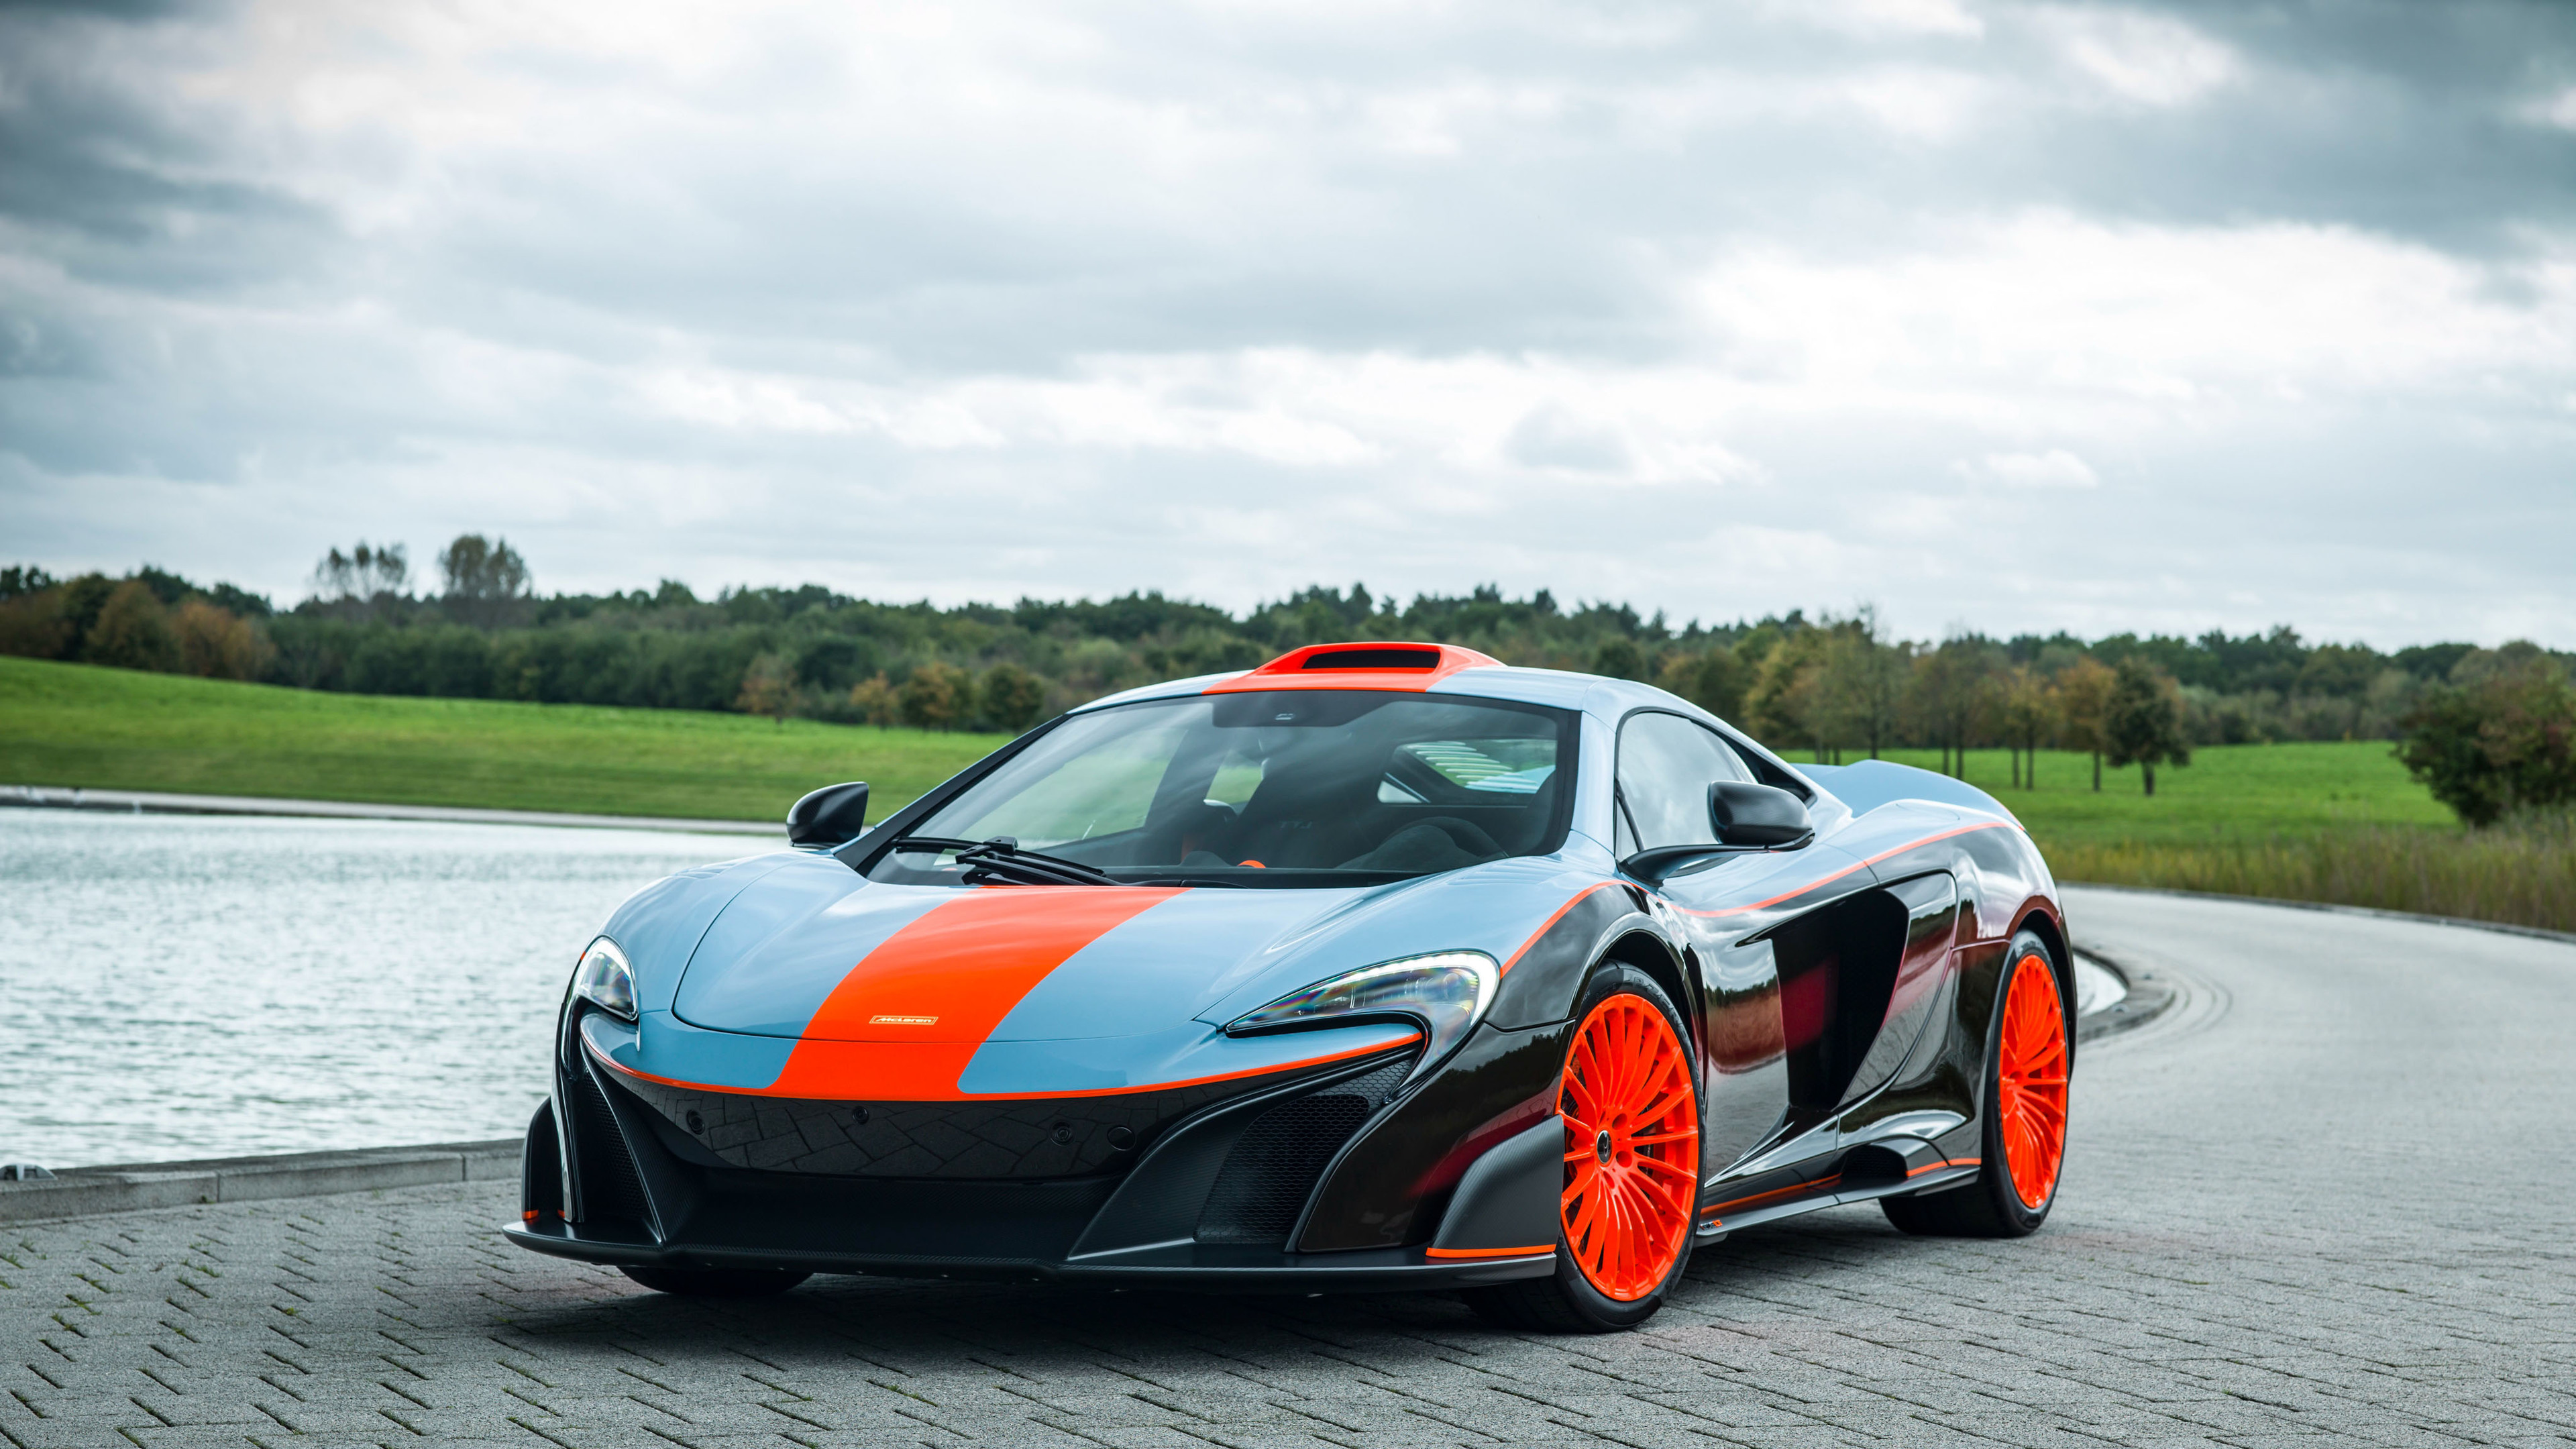 mclaren mso 675lt gulf racing theme 2018 1539111533 - McLaren MSO 675LT Gulf Racing Theme 2018 - mclaren wallpapers, mclaren mso 675 lt wallpapers, hd-wallpapers, cars wallpapers, 4k-wallpapers, 2018 cars wallpapers